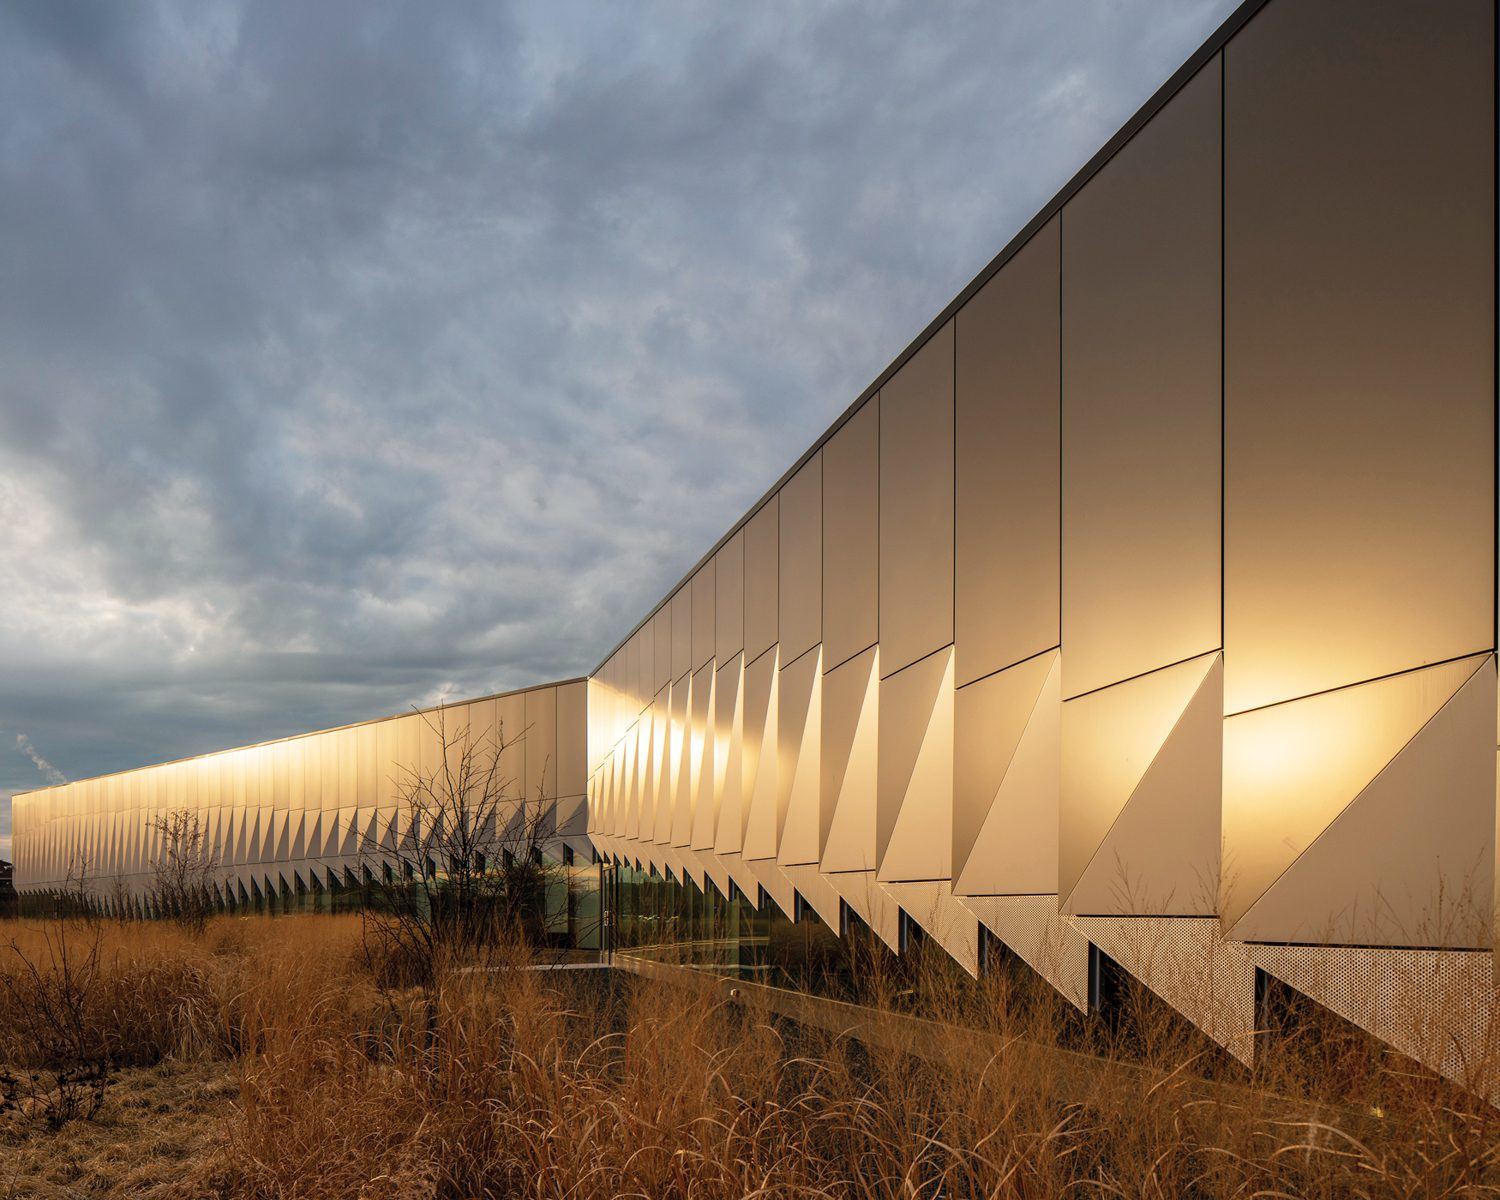 Exterior of Daley College Manufacturing Technology & Engineering Center, Chicago, by JGMA.